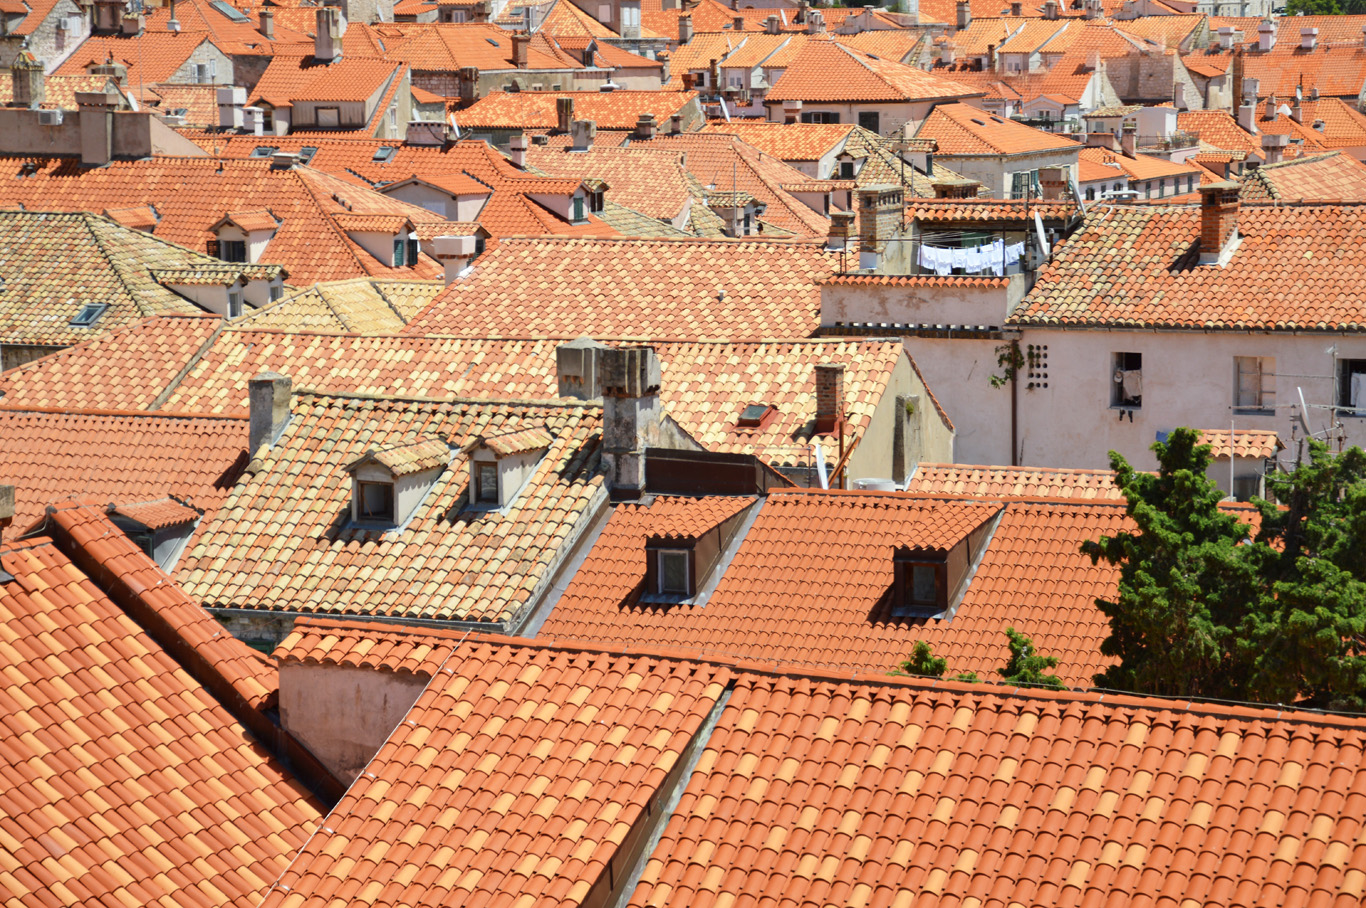 Beautiful, red roof tiles